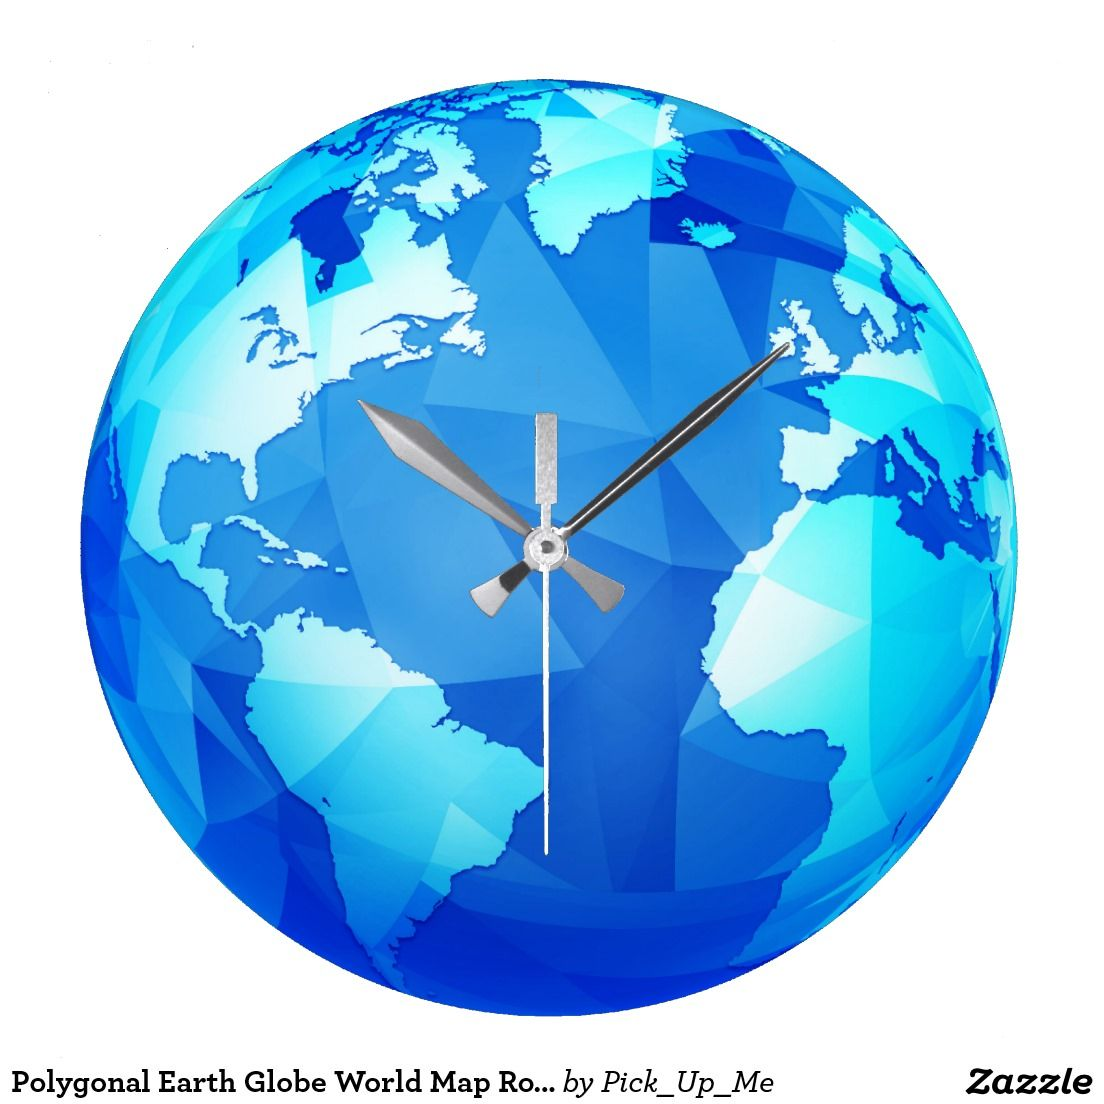 Polygonal earth globe world map round wall clock all aboard for polygonal earth globe world map round wall clock gumiabroncs Images